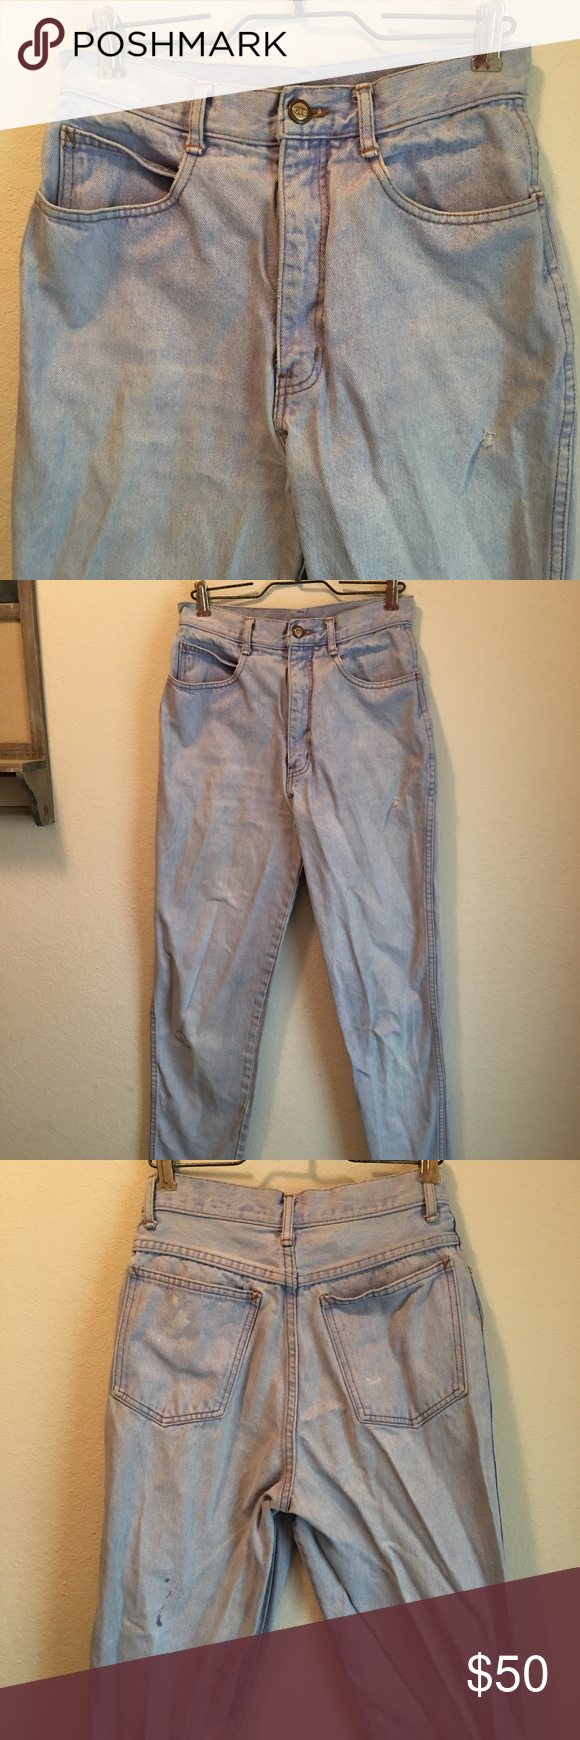 Vintage Rio Mom Jeans Vintage Jeans Rio High Waisted Mom Jeans Size 9 100 Cotton These Jeans Are Vintage So They May Have Some Wear Character On